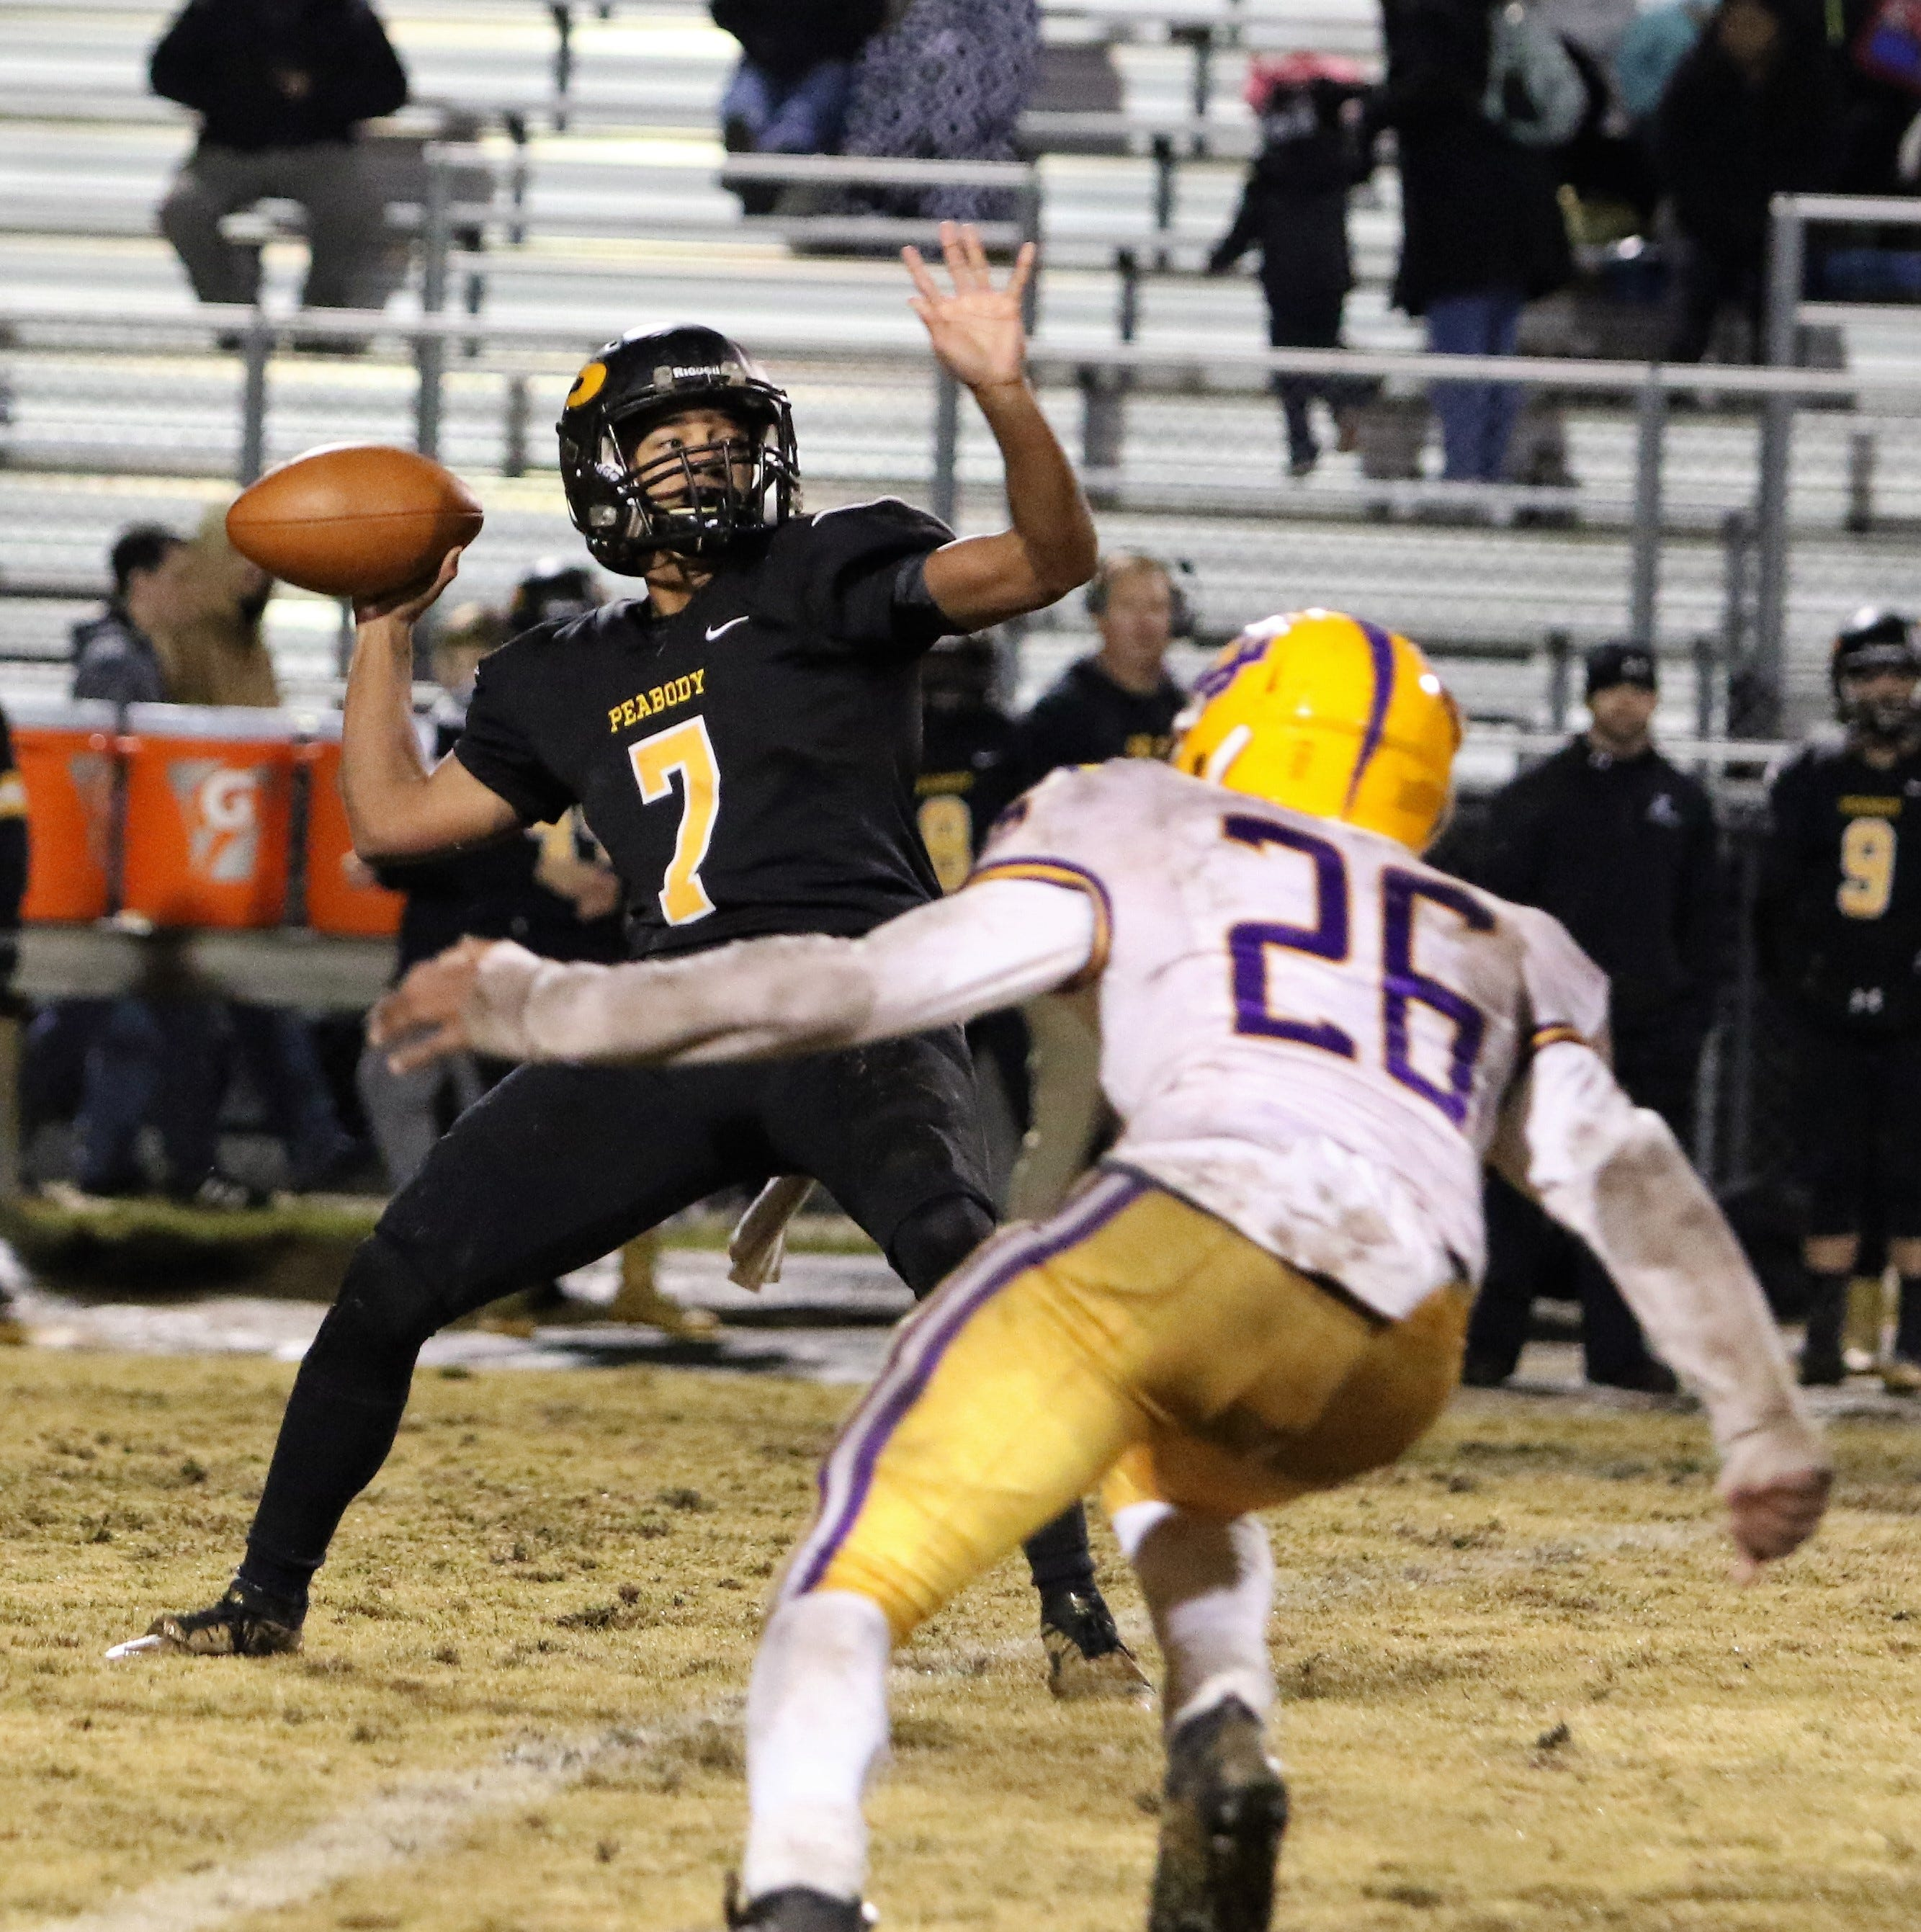 High school football semifinal preview: Peabody vs. Waverly